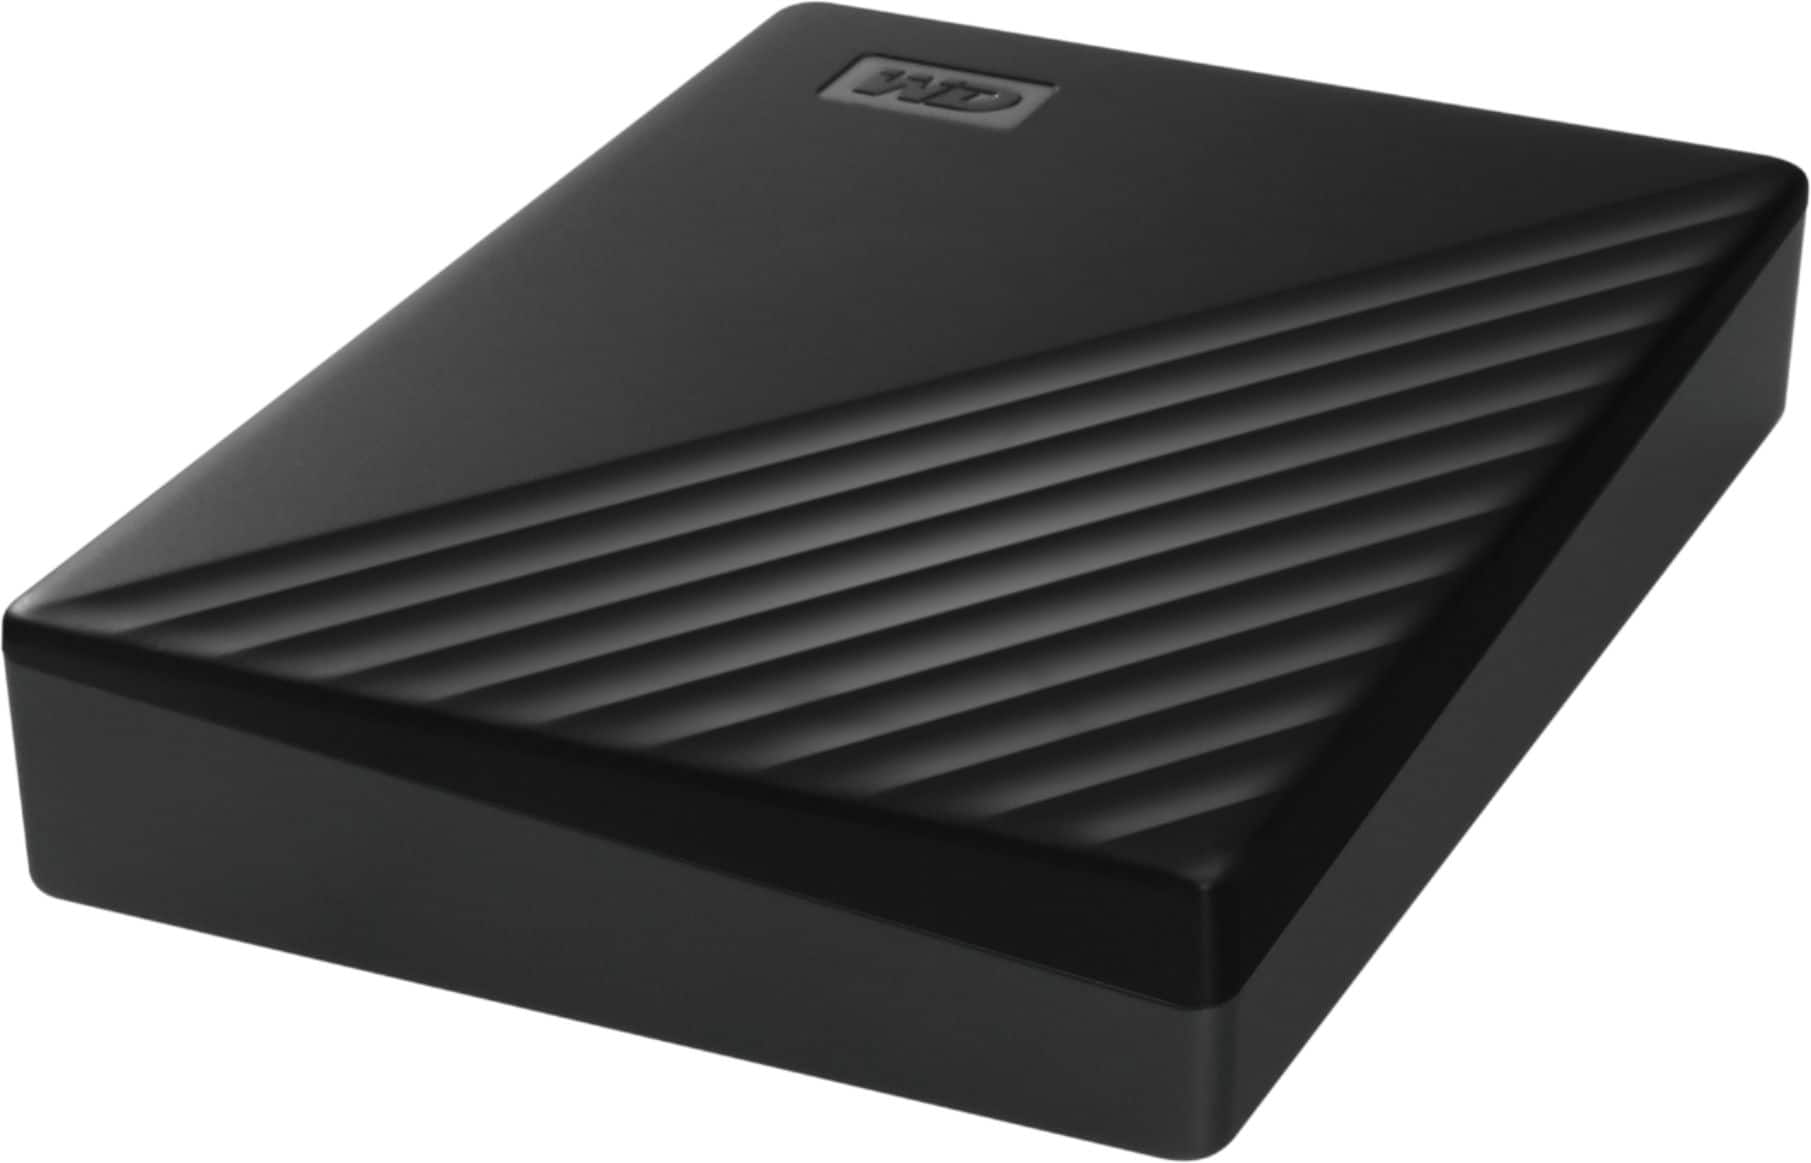 5TB WD My Passport External USB 3.2 Portable Hard Drive $101.99 + Free S/H + 2.5% Slickdeals Cashback - w/ Chromebook perks coupon; all others: YMMV